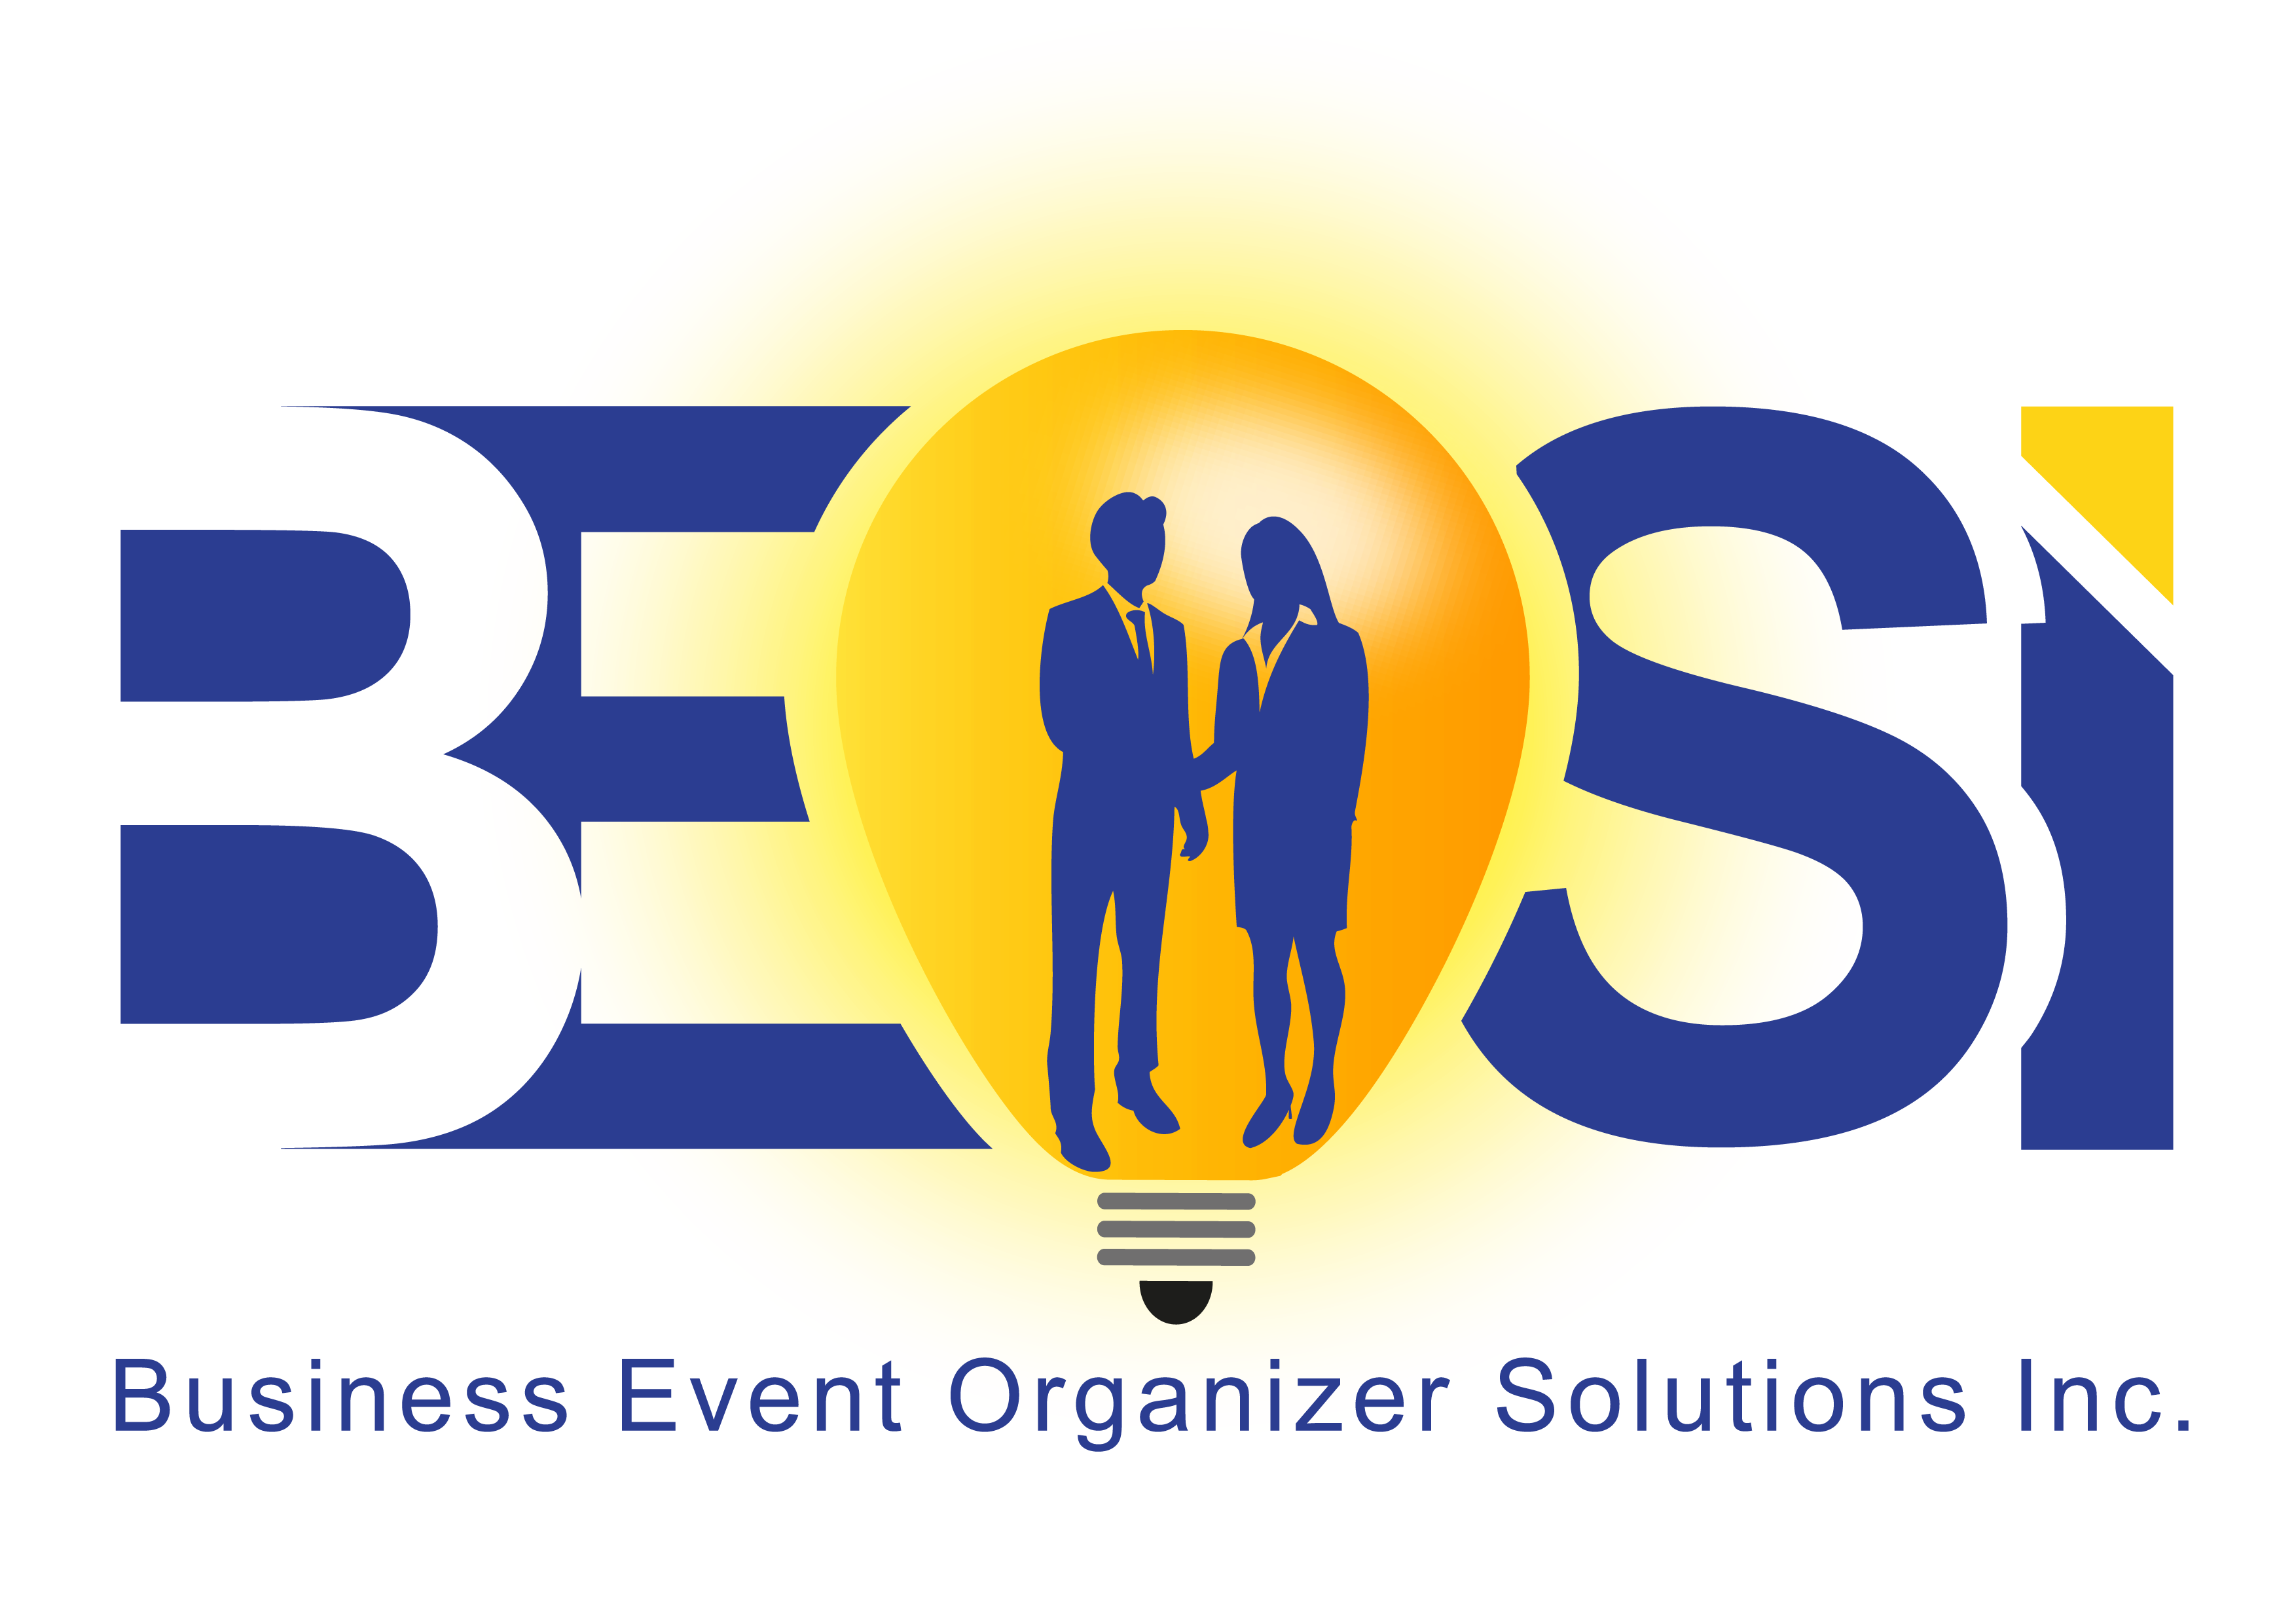 Business Event Organizer Solutions Inc.